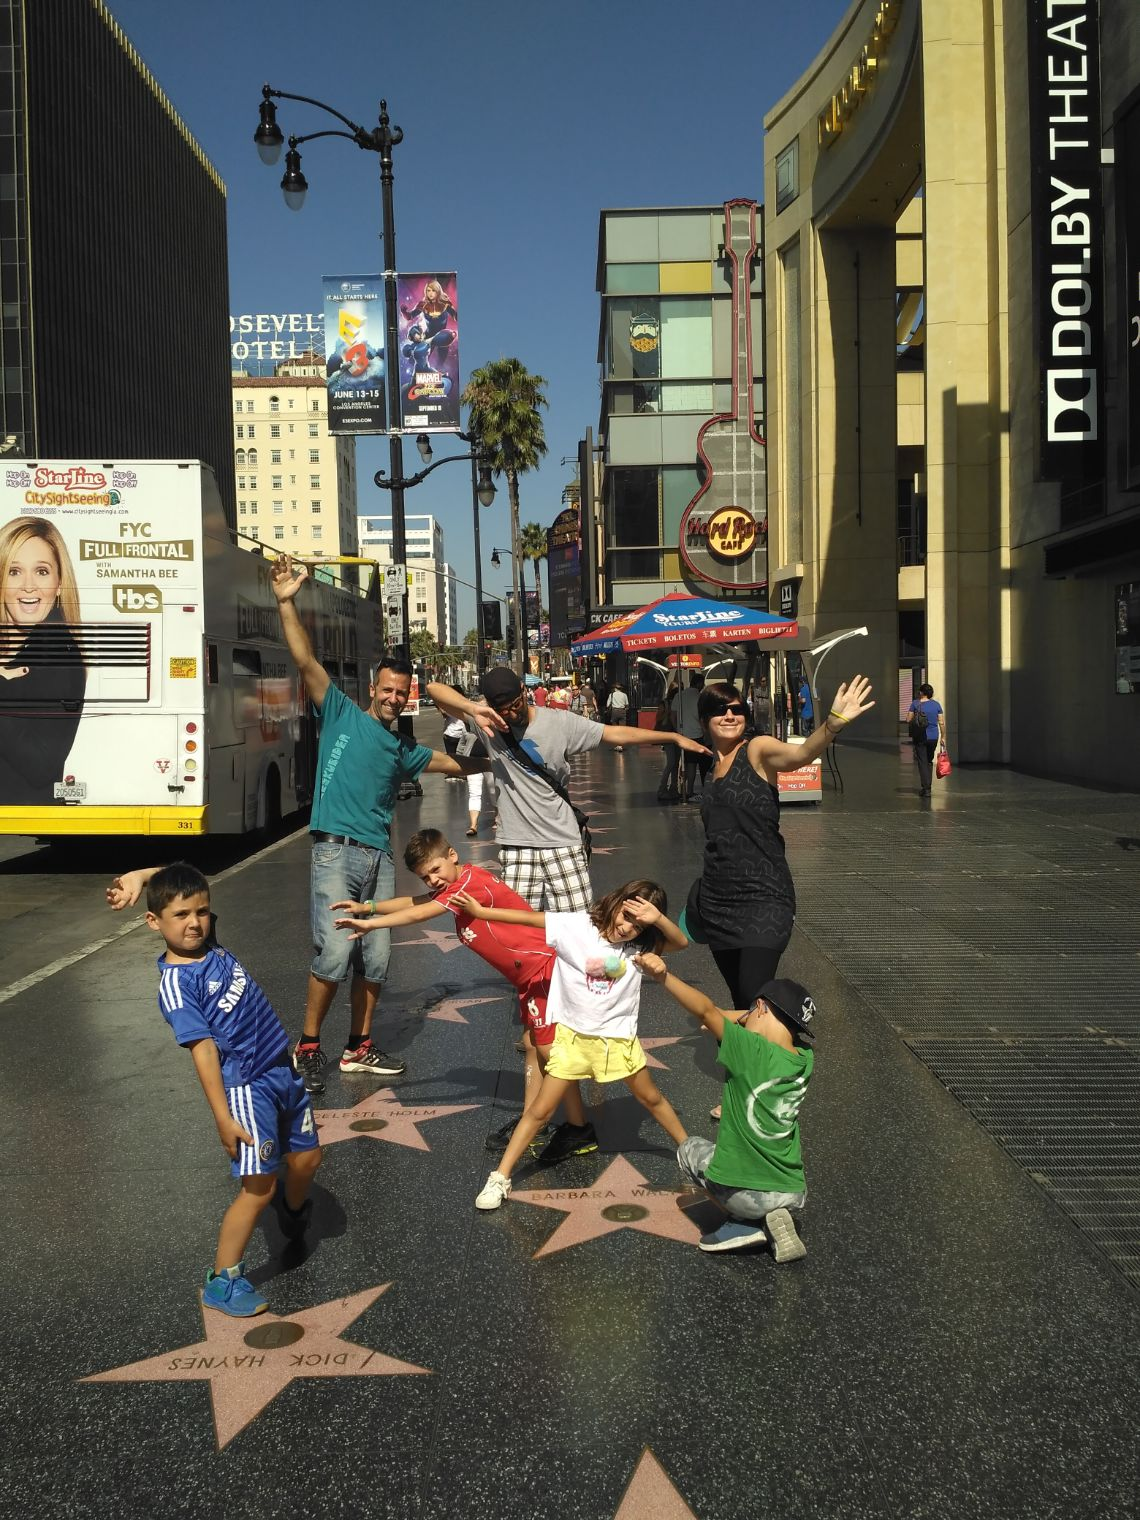 Paseo de la fama en Hollywood o Walk of Fame como se dice por estas tierras.